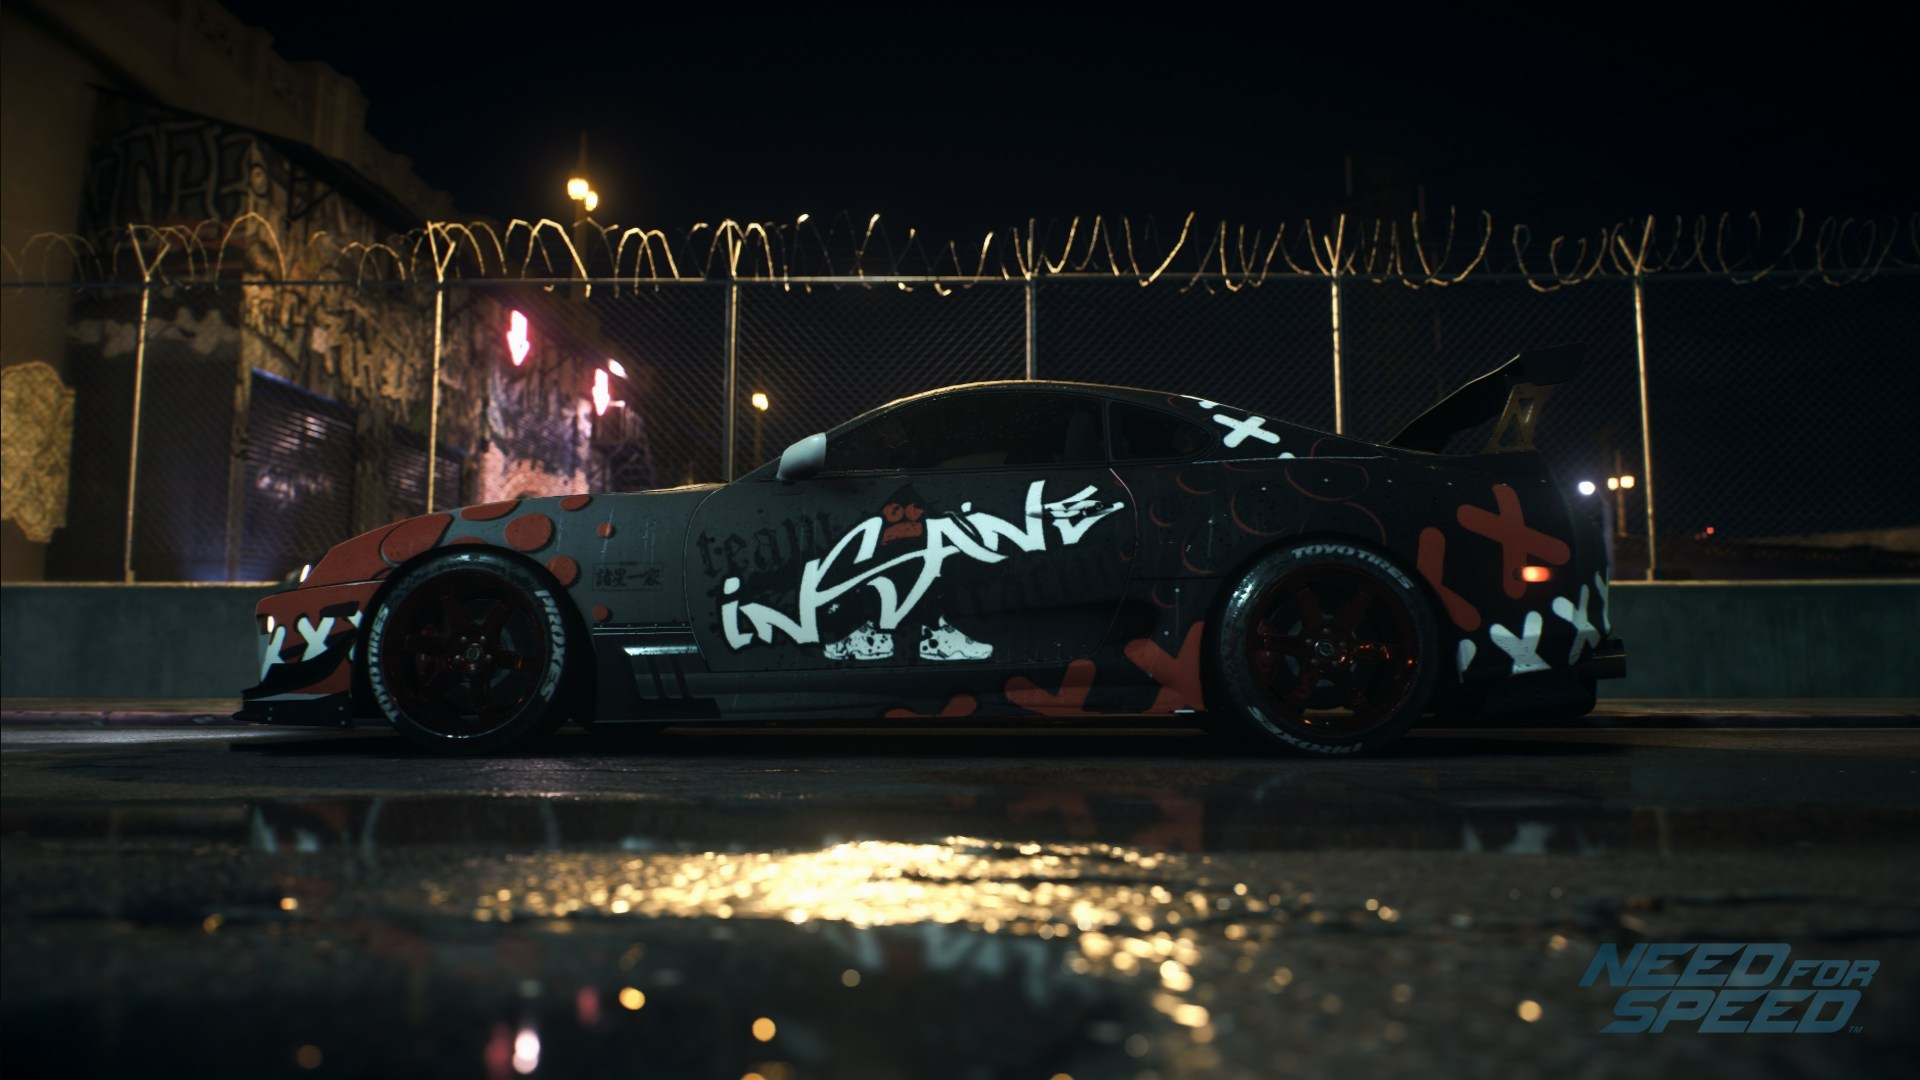 Need for Speed HD Wallpaper Background 25849 Wallur 1920x1080